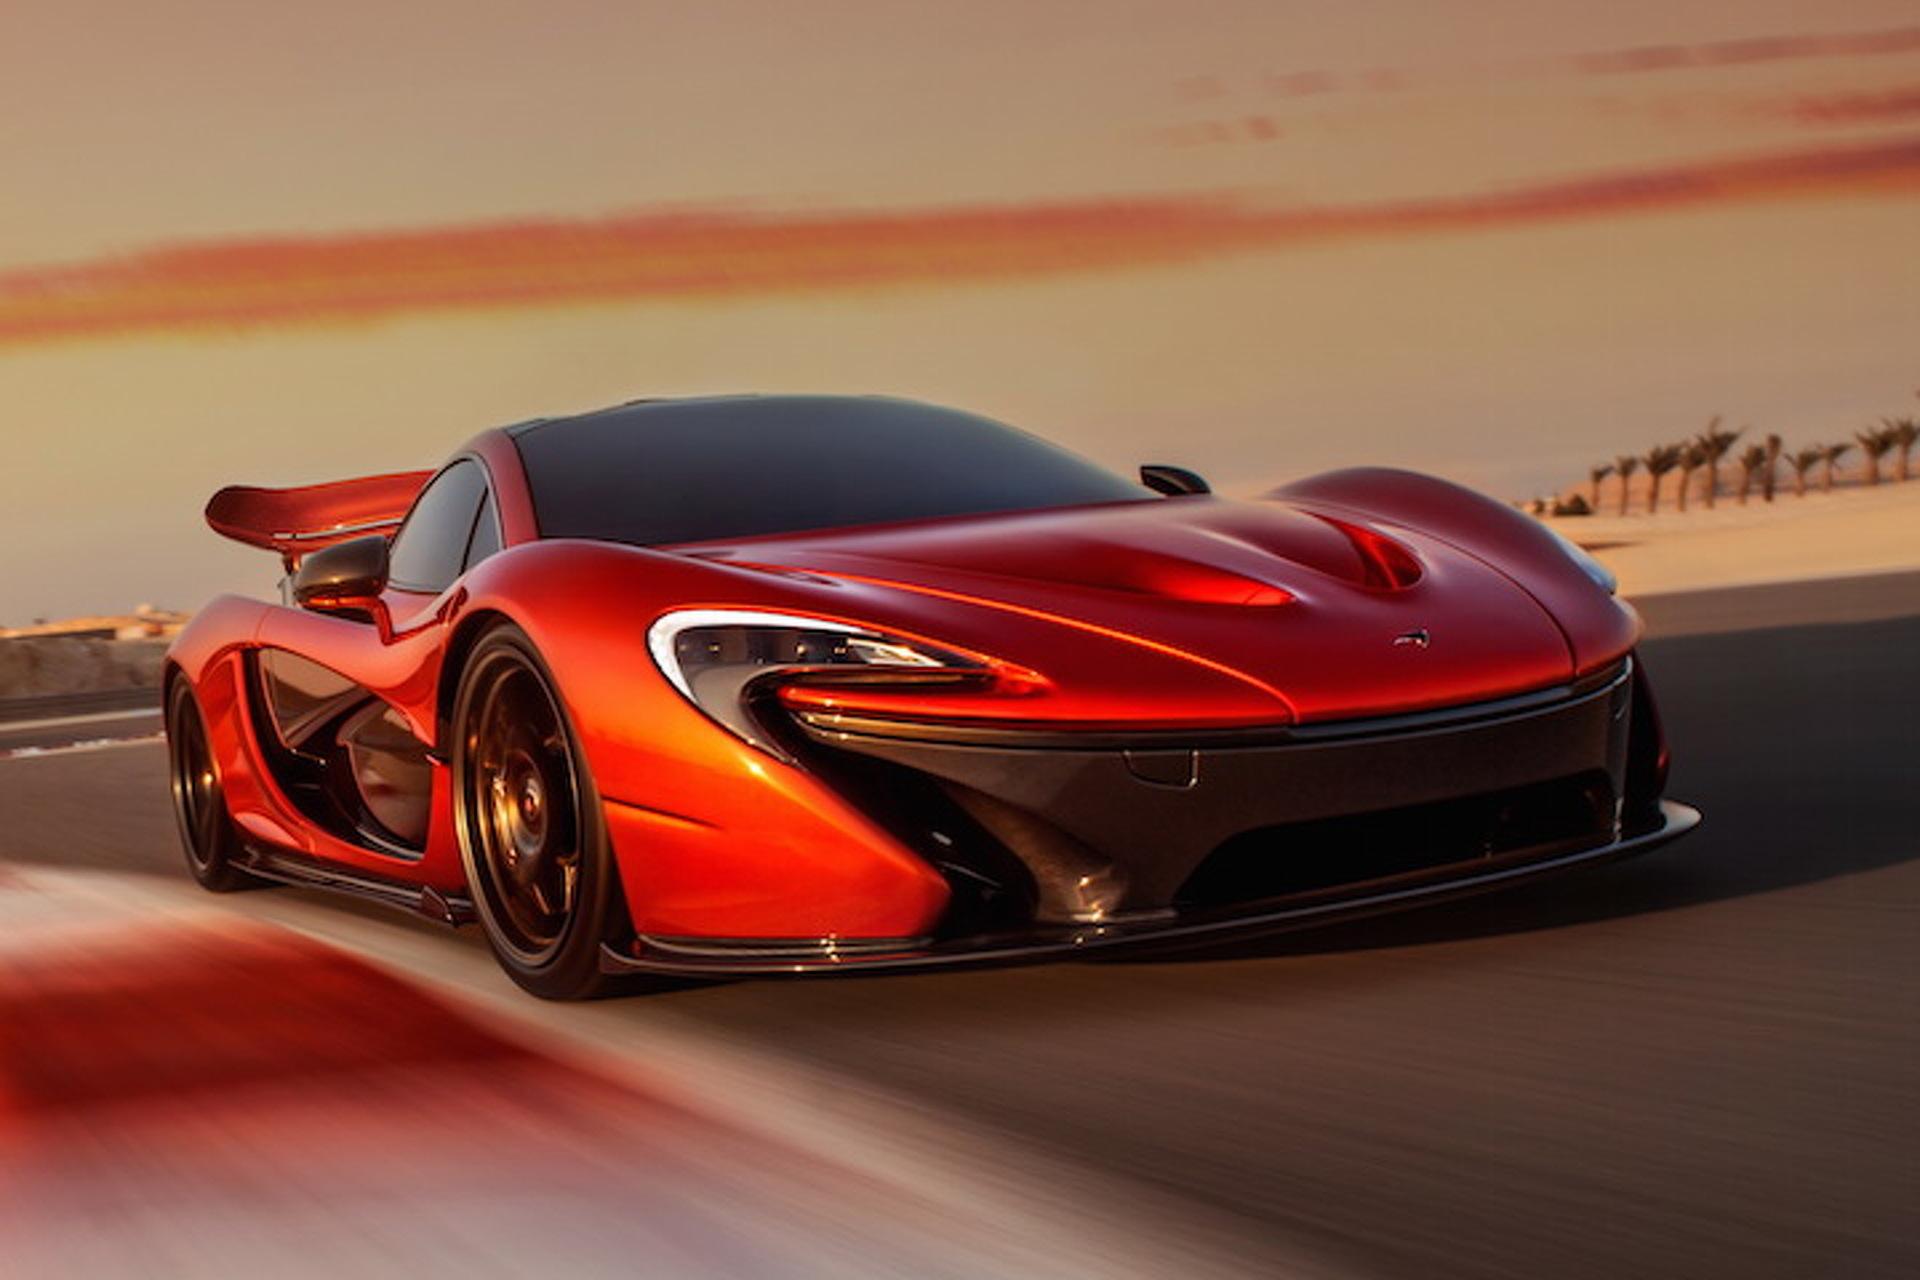 McLaren Officially Ends Production of the P1 Hypercar